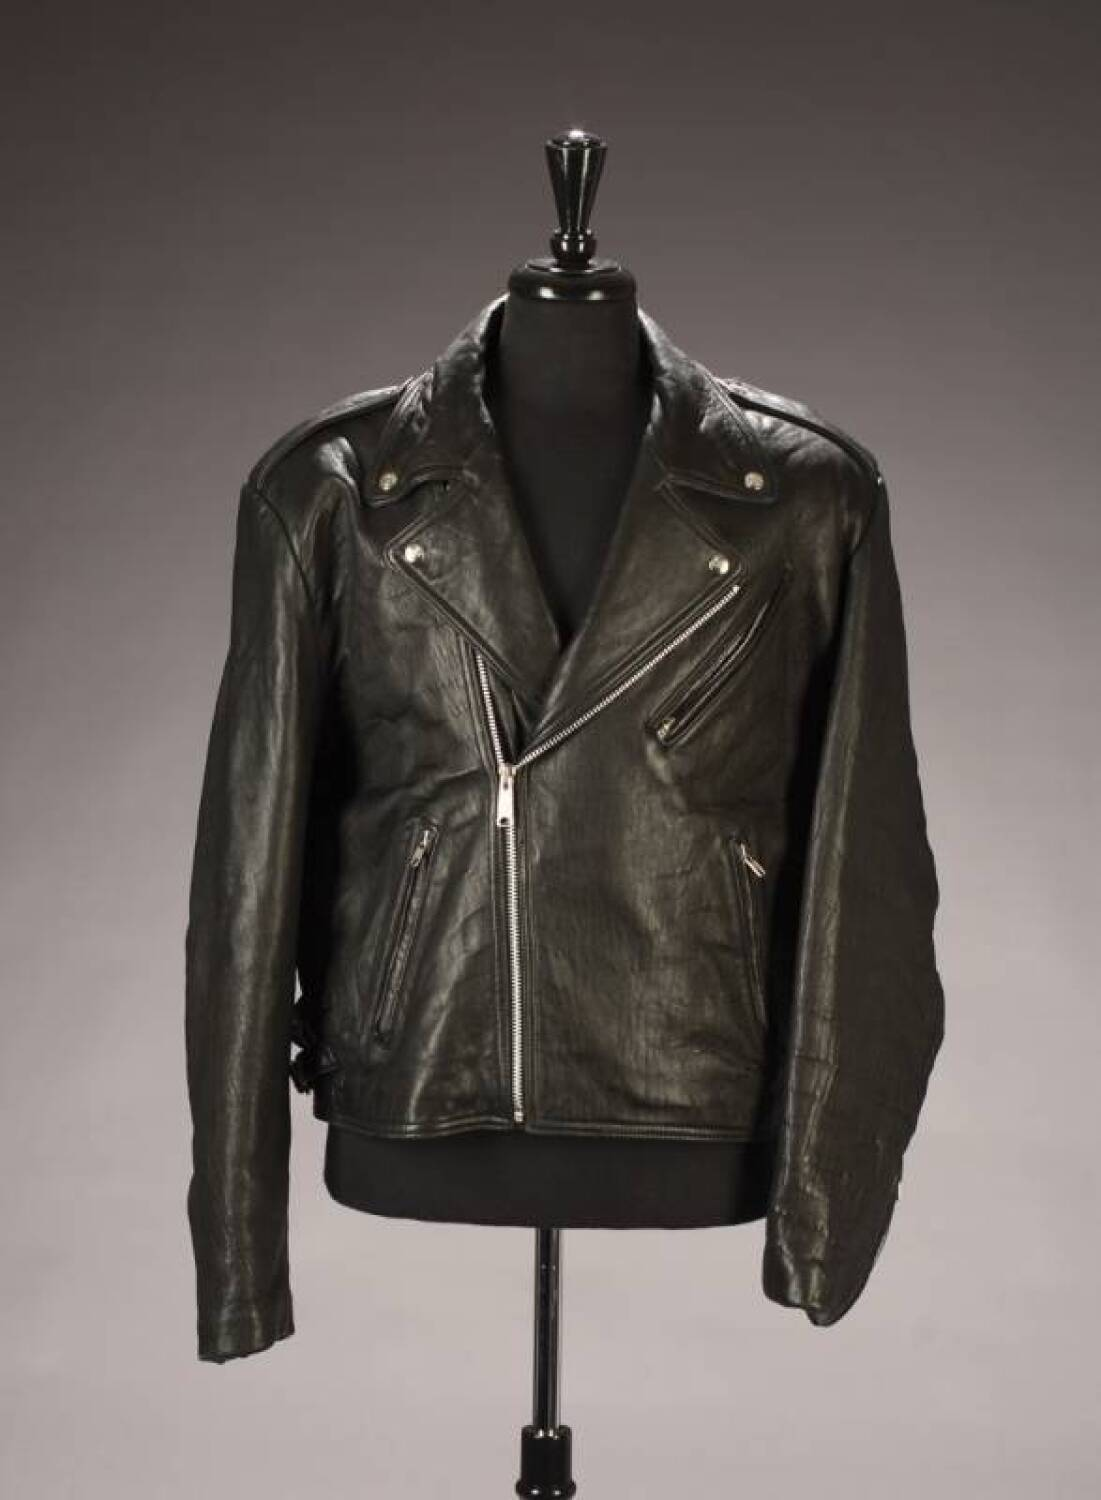 File:Hard Rock Cafe Florence - John Lennon leather jacket (The Beatles